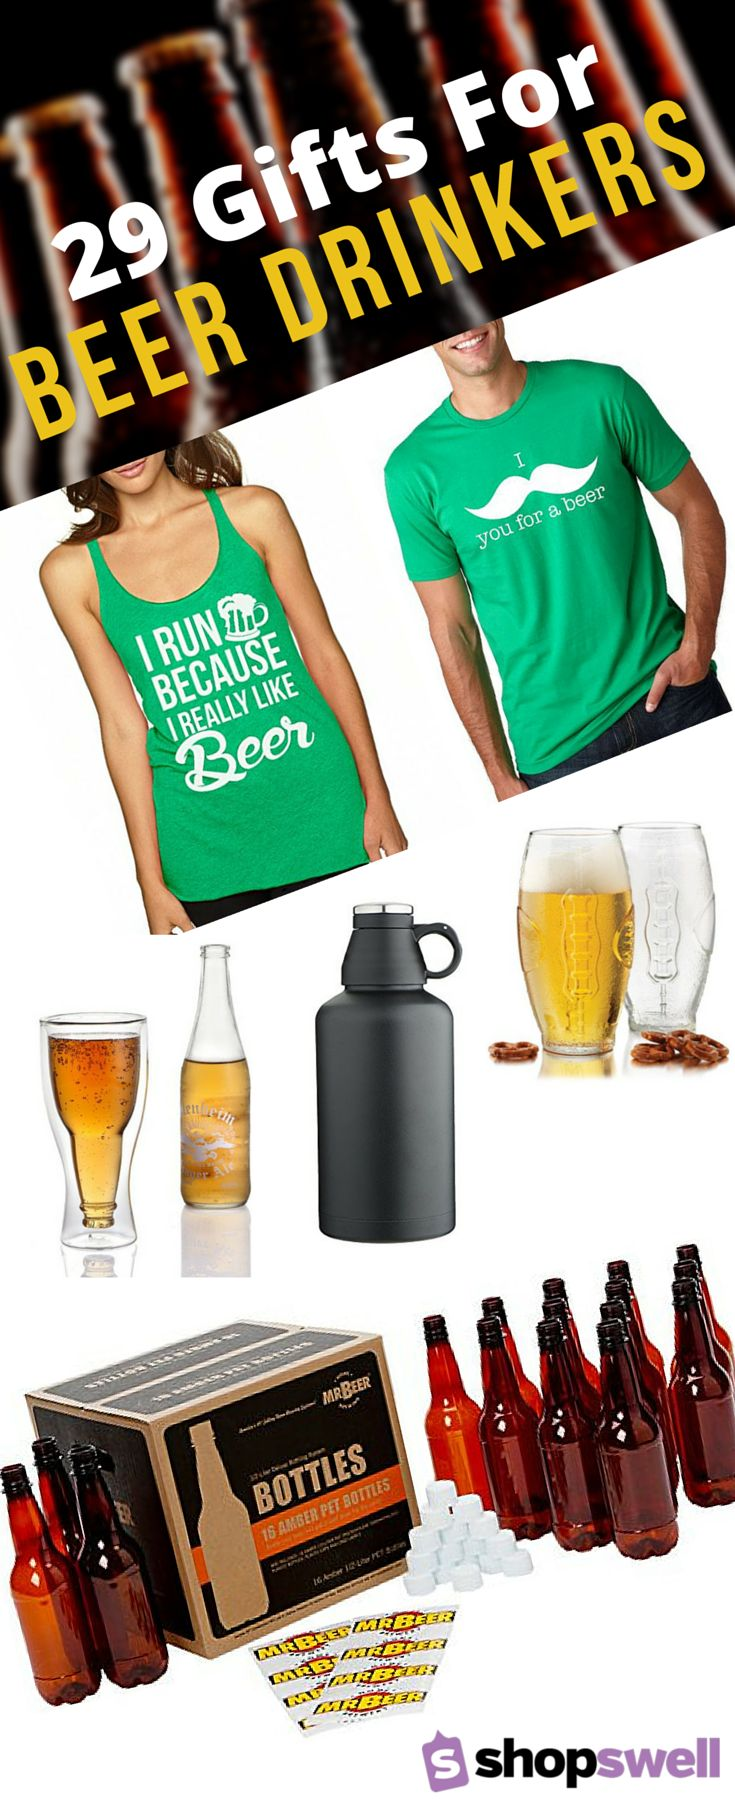 gifts for beer drinkers Archives | MomsWhoSave.com